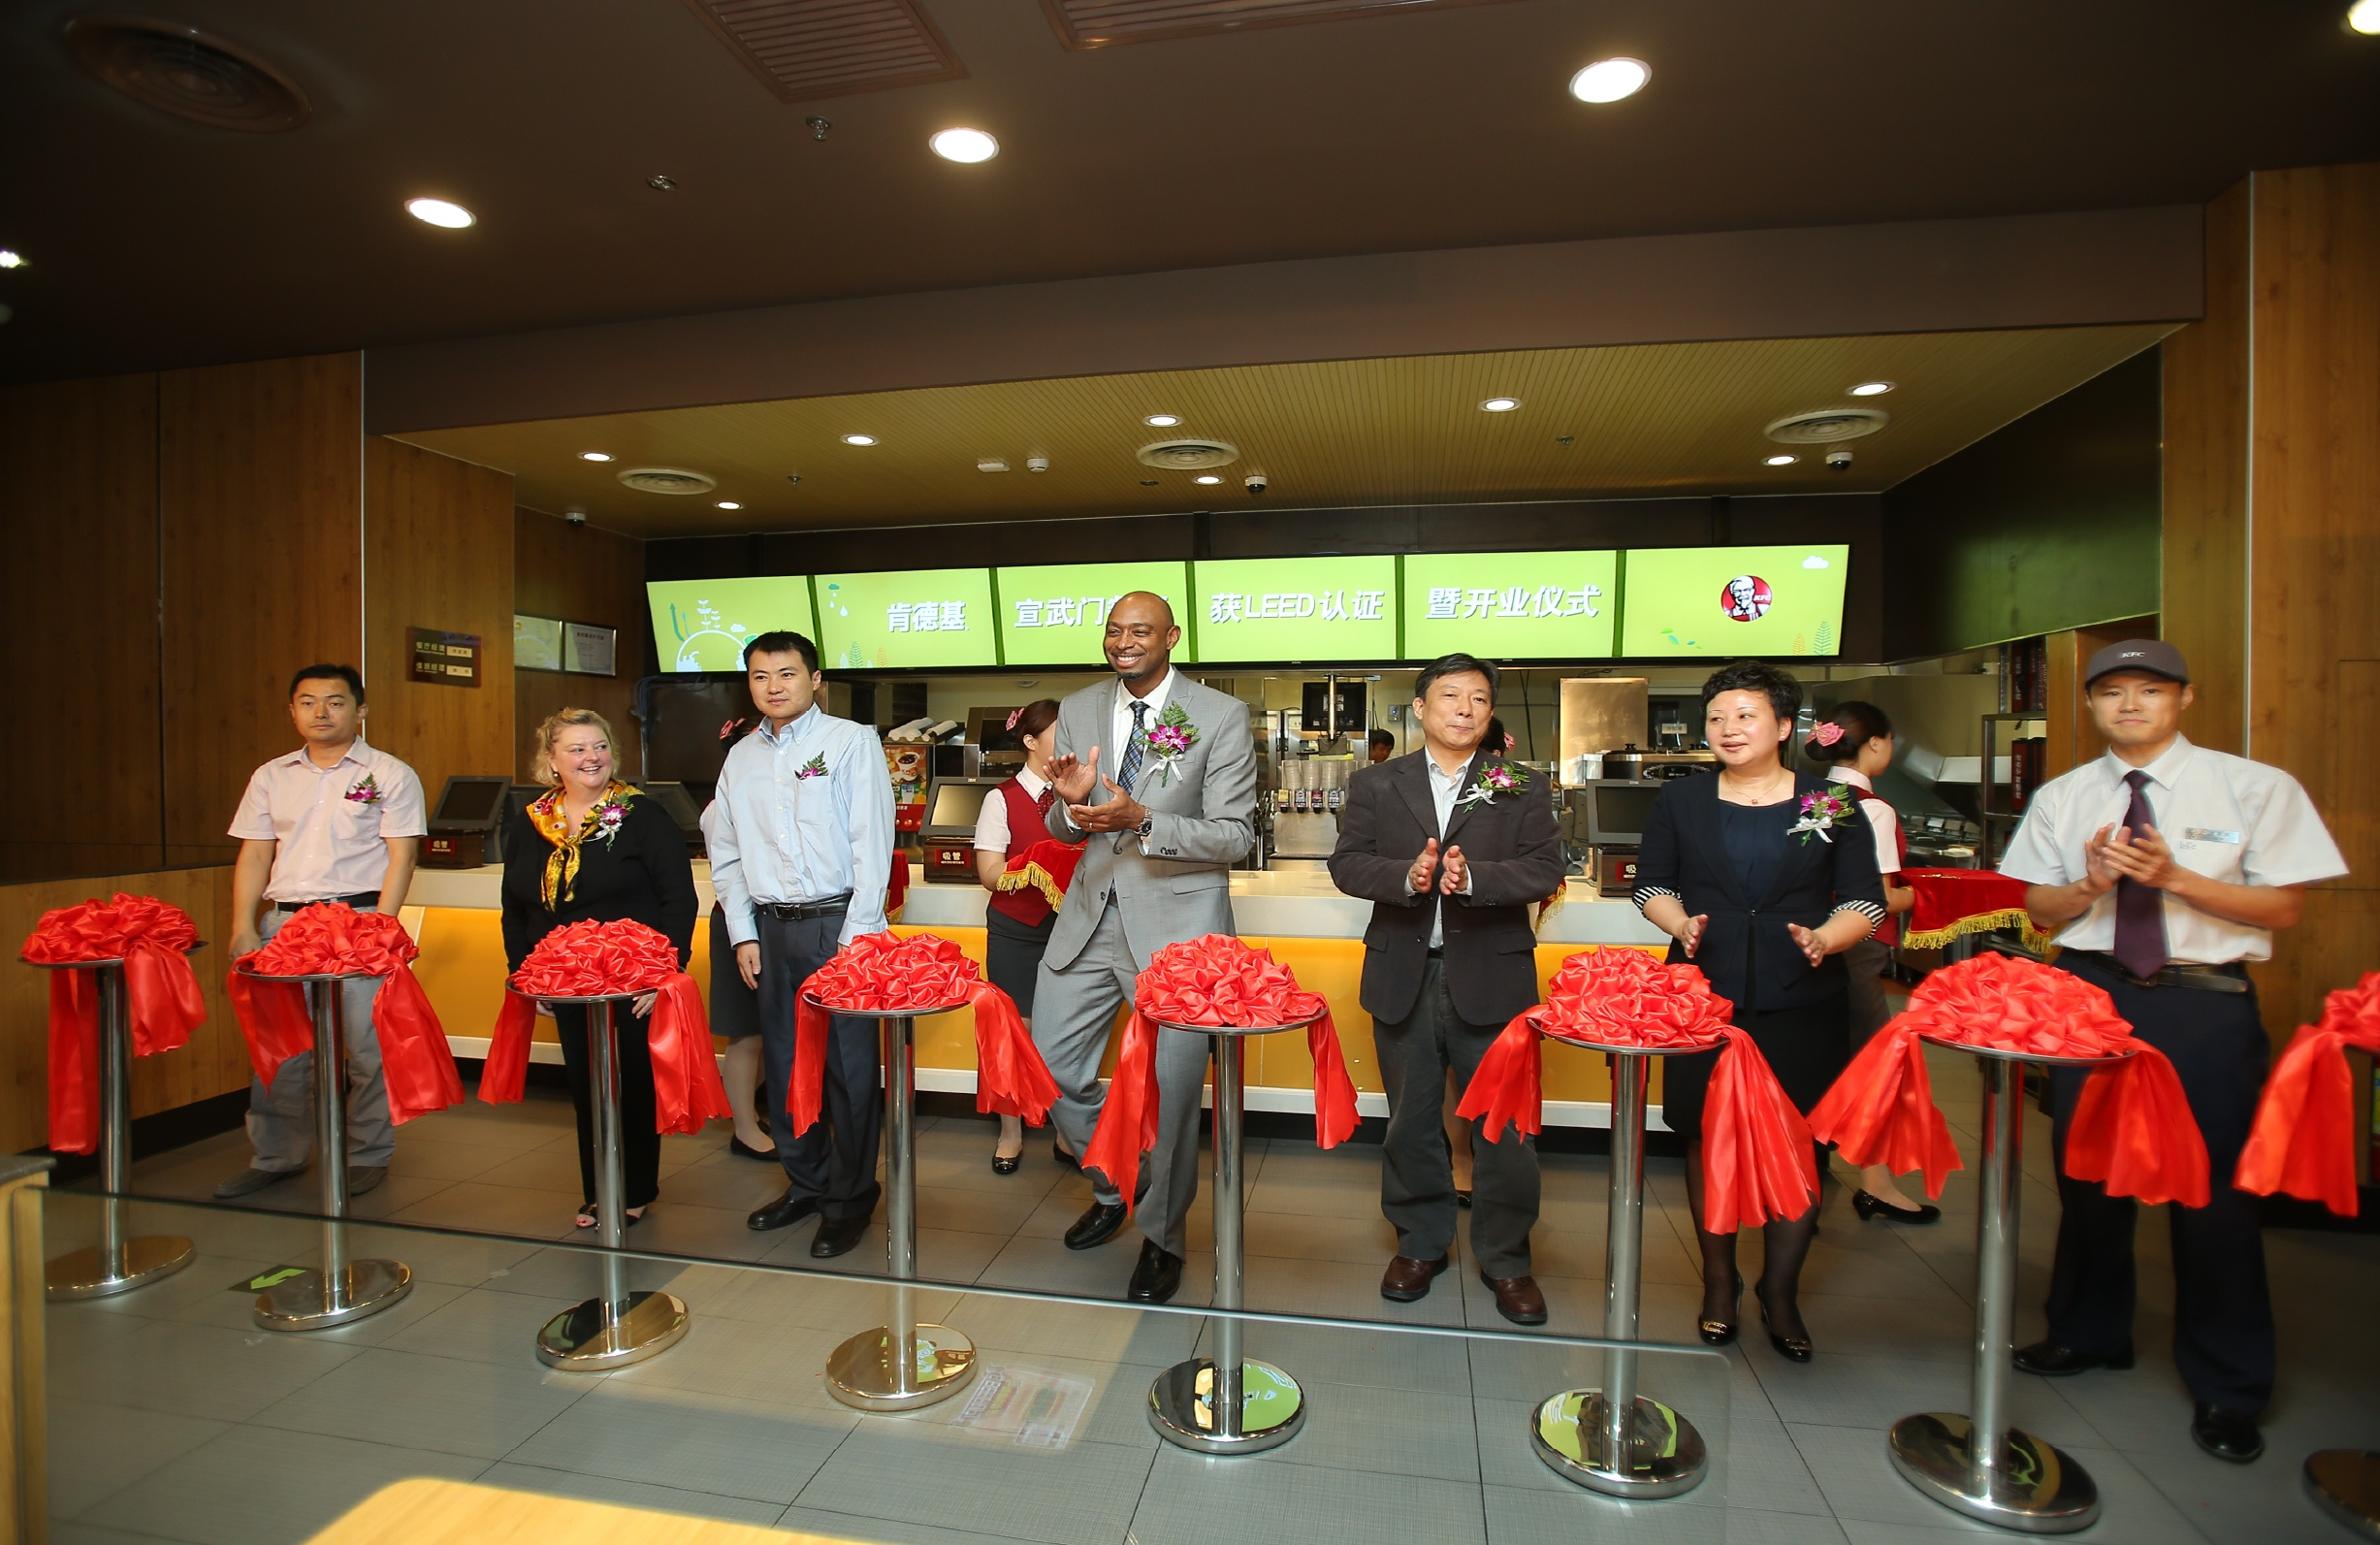 Multiple KFCs in China have received LEED certification